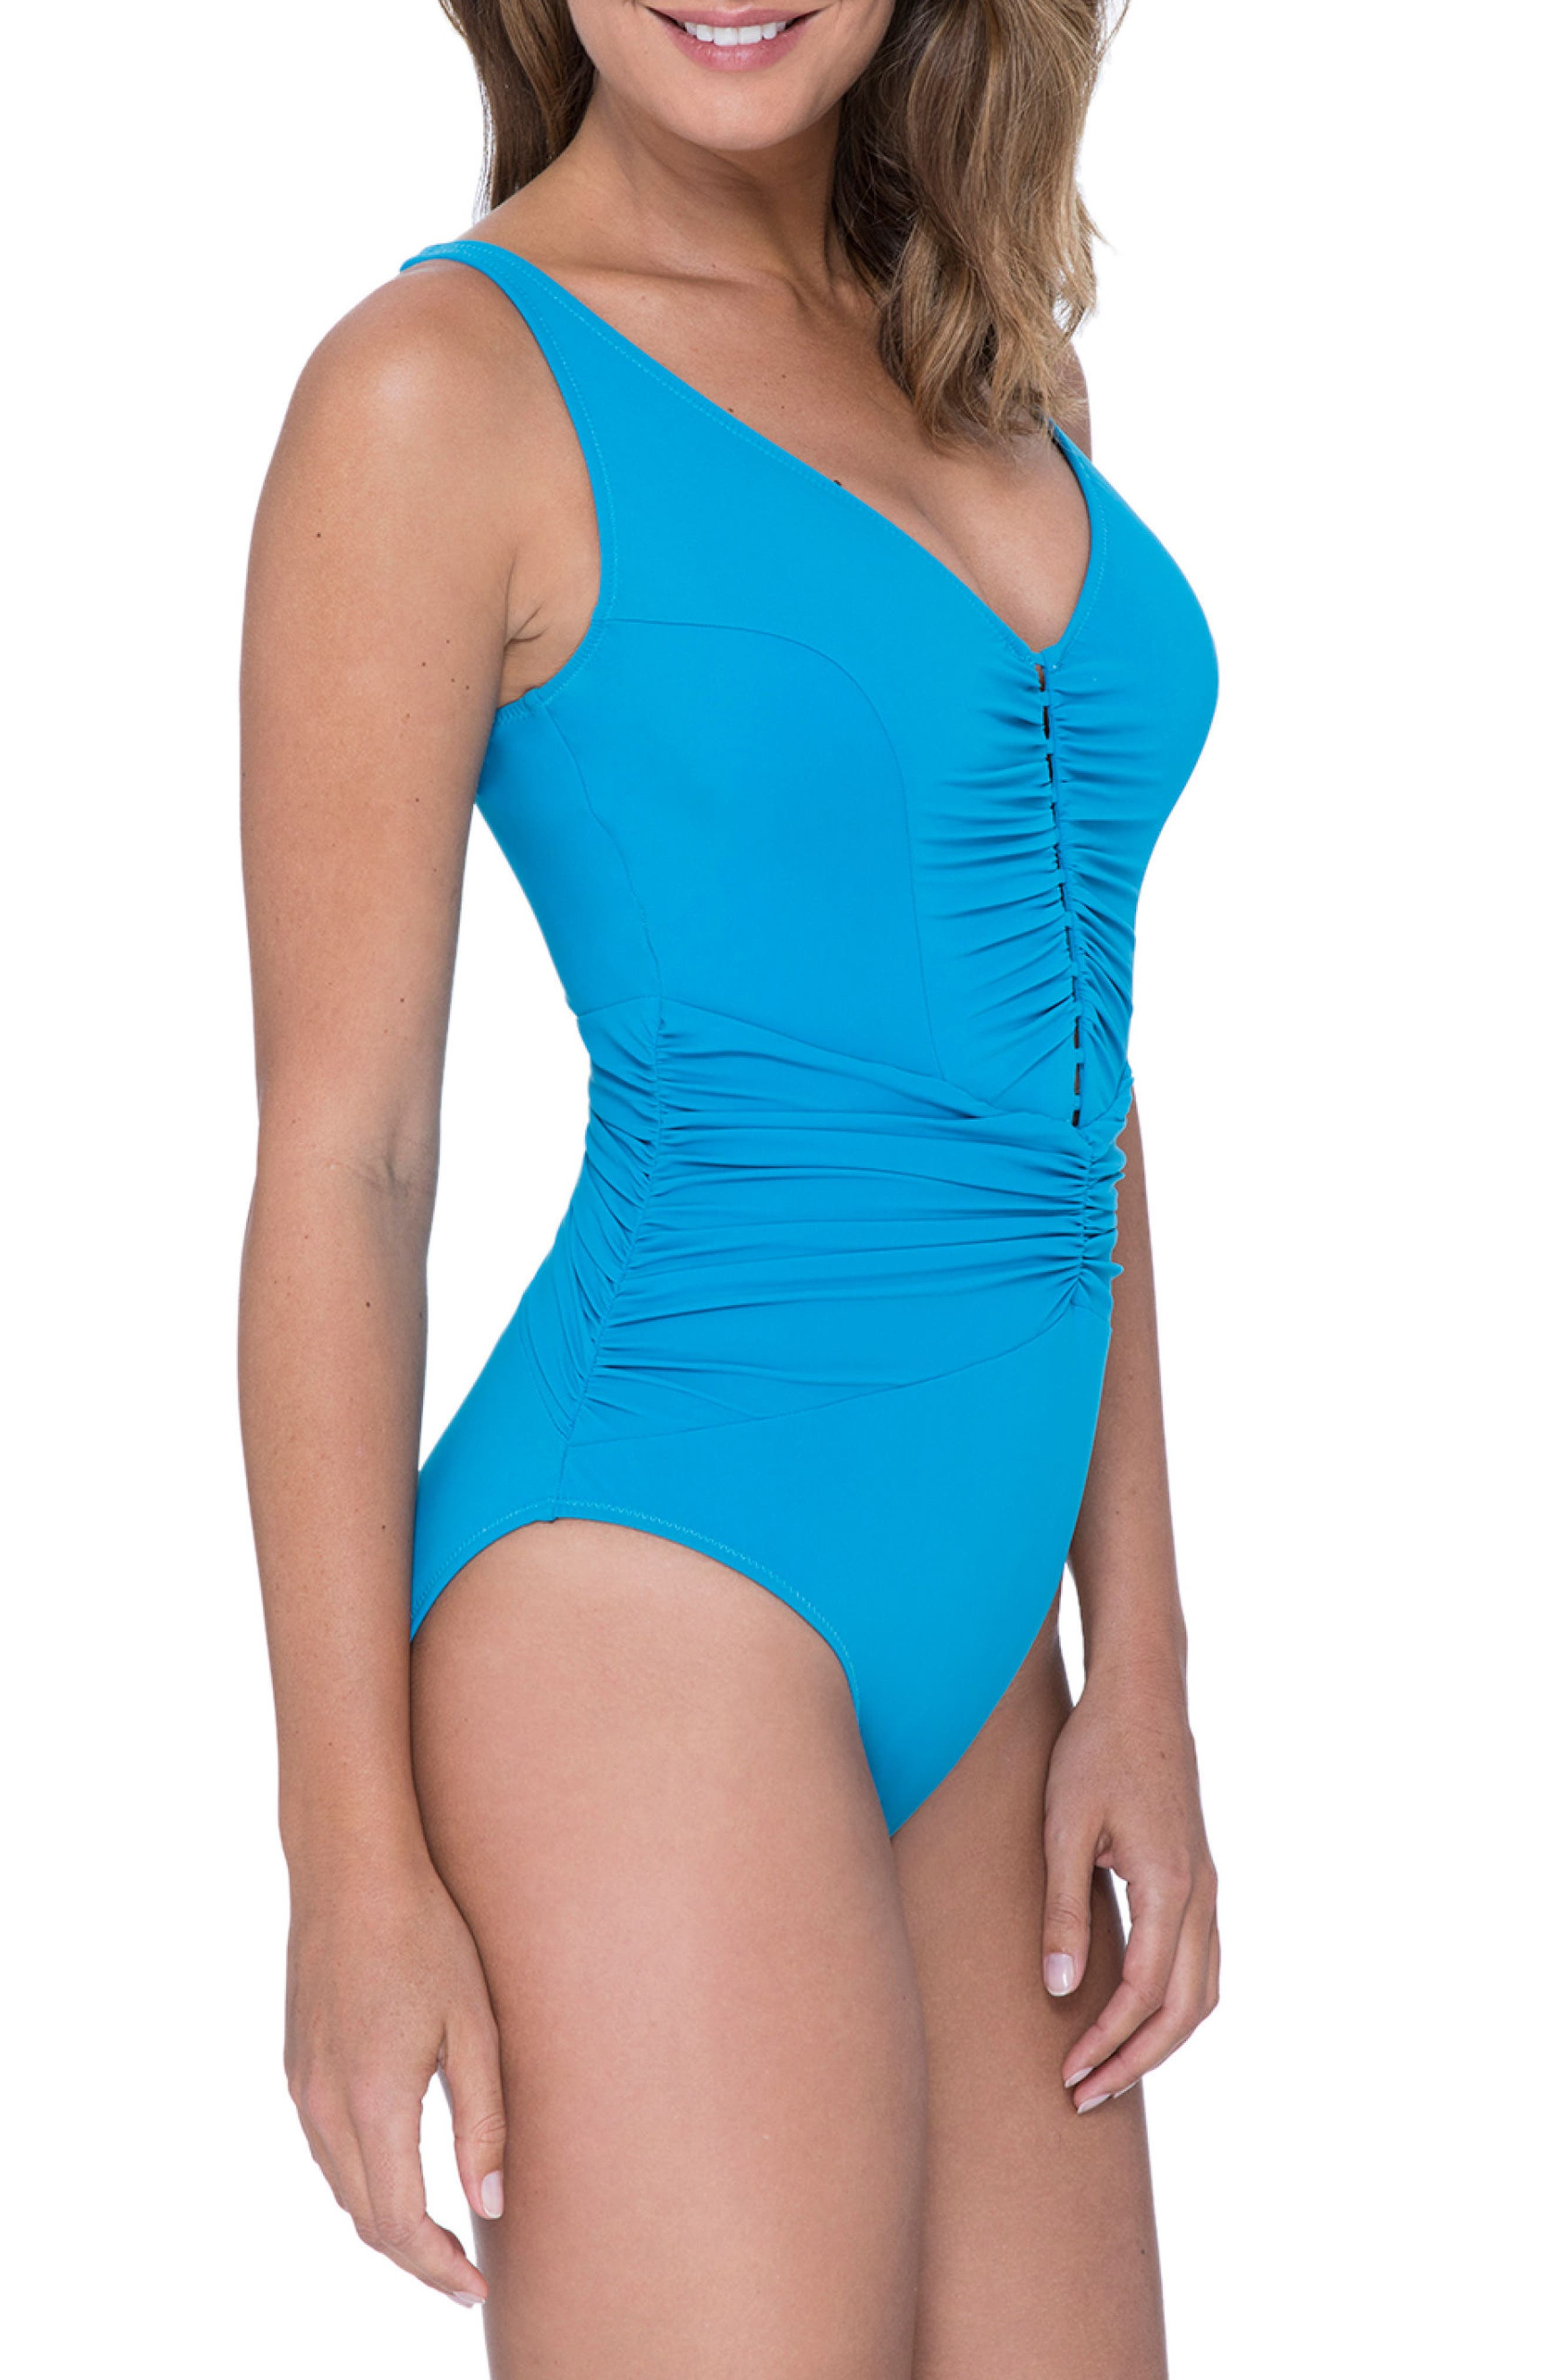 Cocktail Party One-Piece Swimsuit,                             Alternate thumbnail 3, color,                             PEACOCK